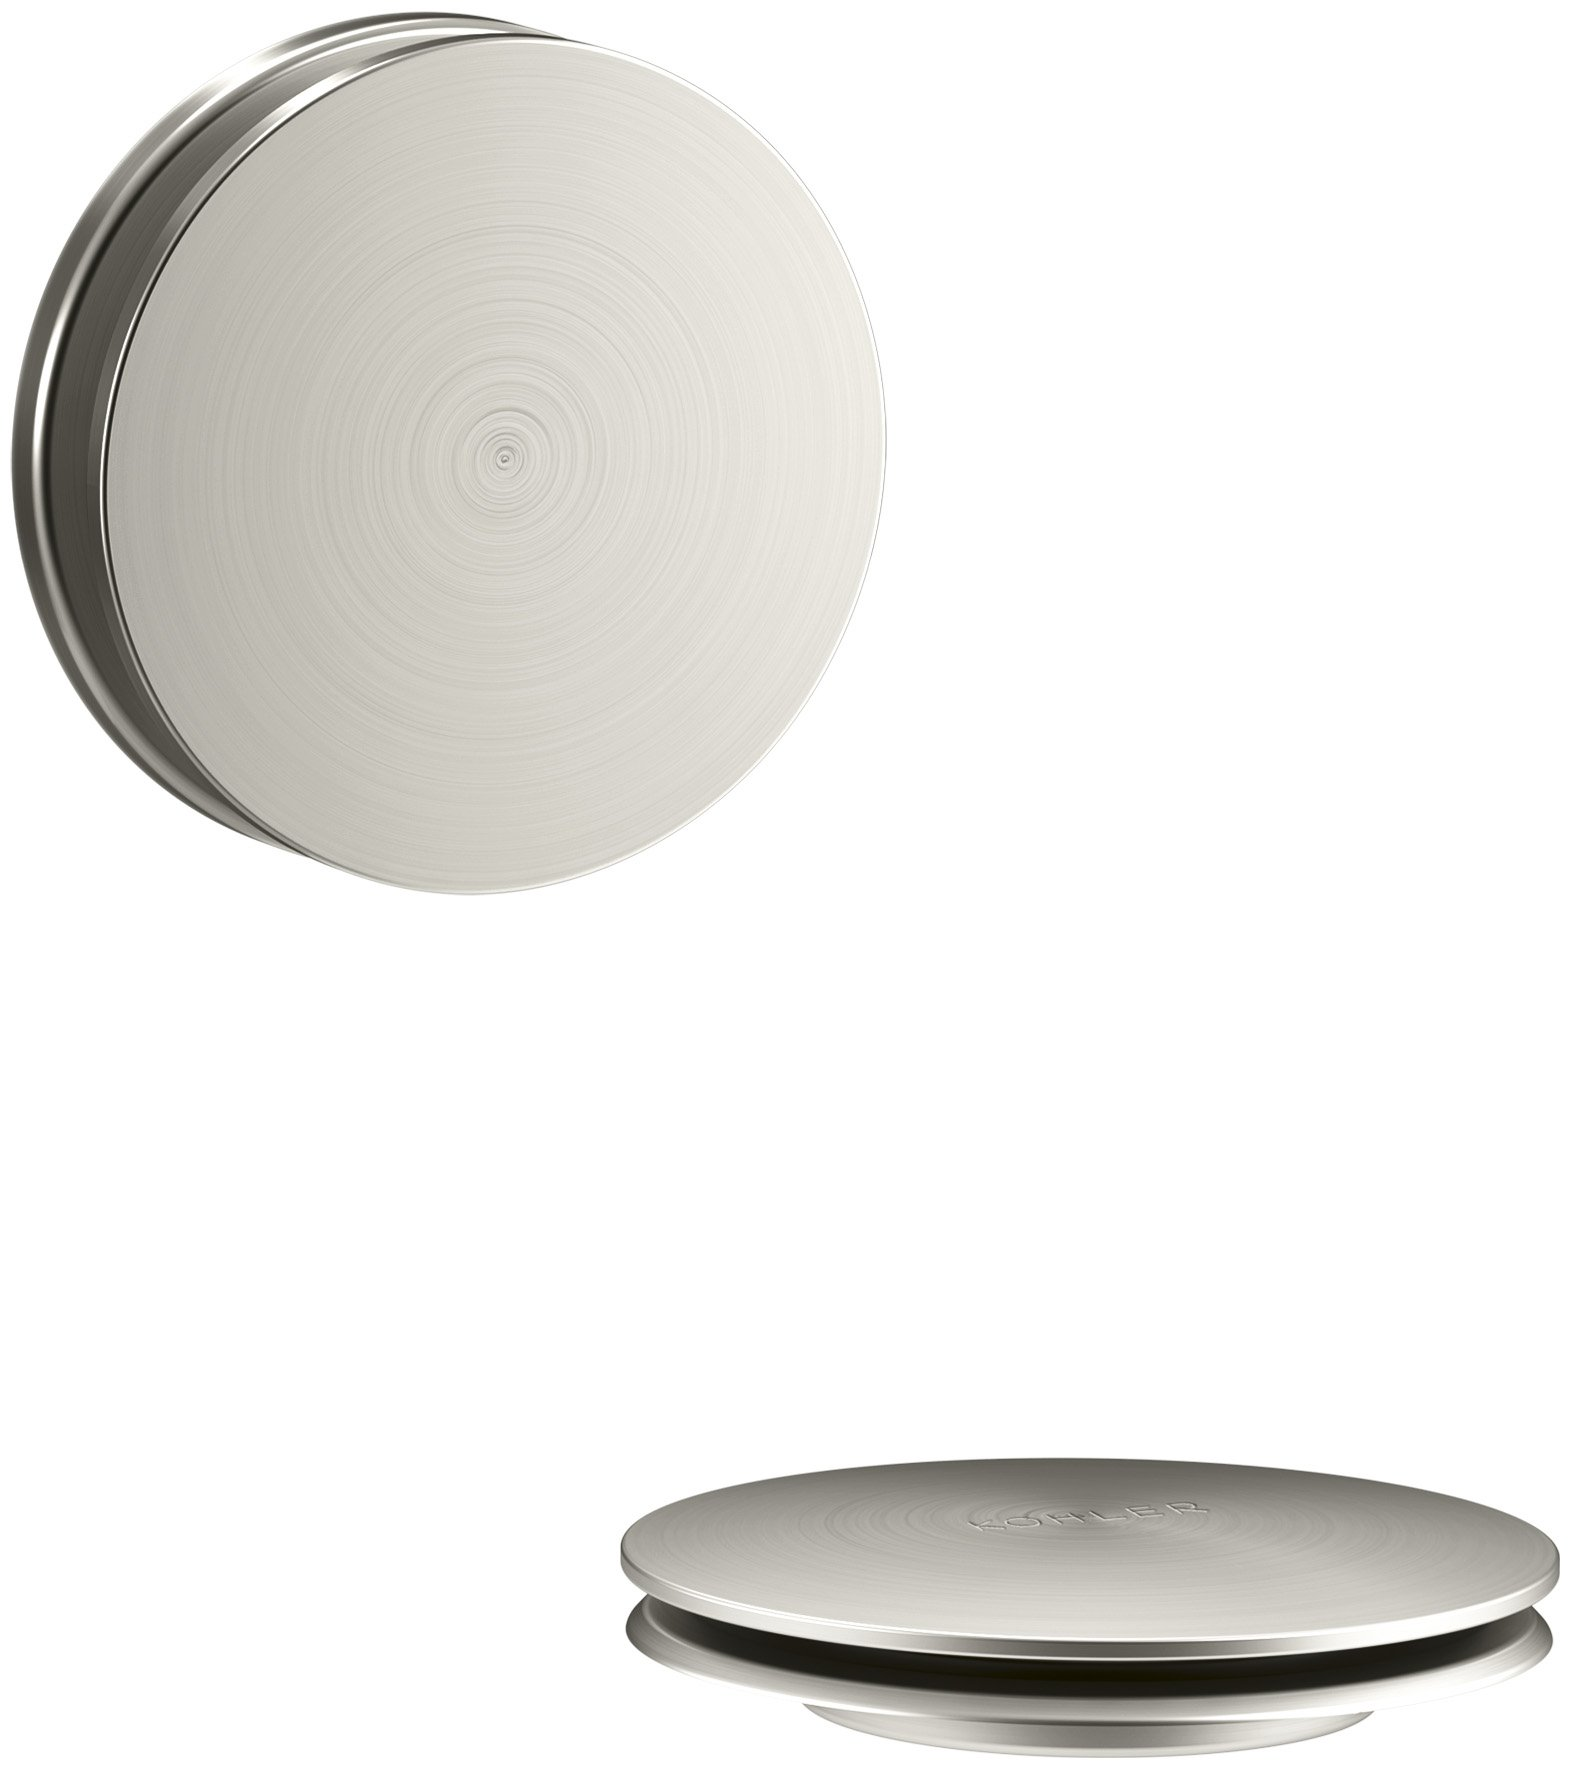 KOHLER K-T37395-BN PureFlo Cable Bath Drain Trim with Contemporary Push Button Handle, Vibrant Brushed Nickel